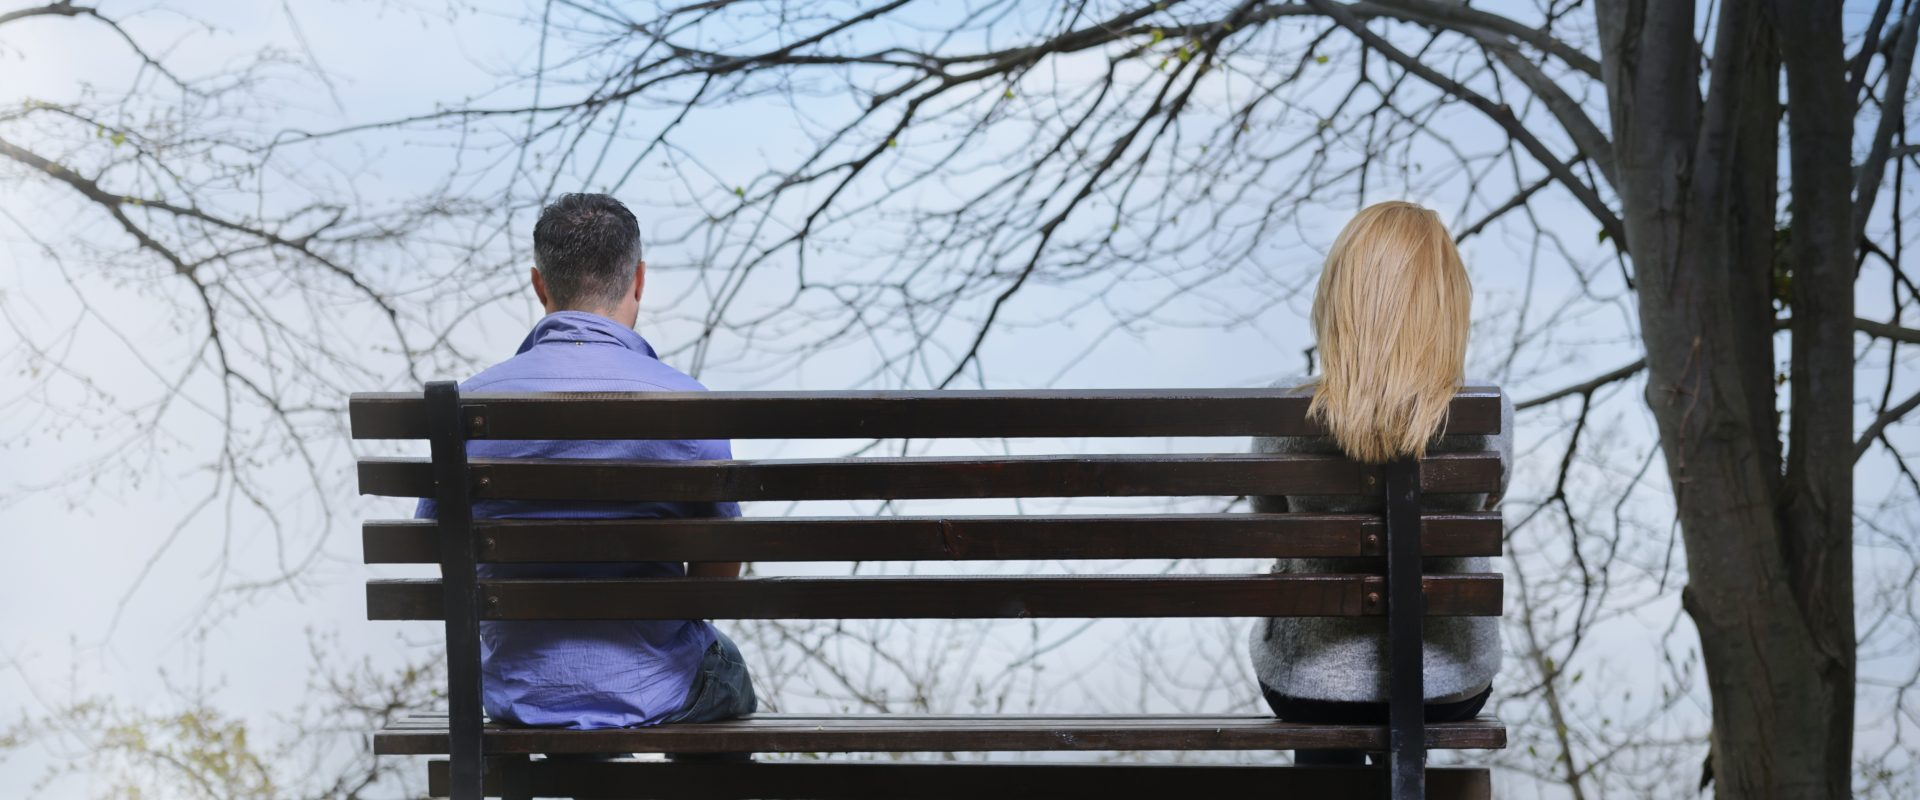 Rear view of couple with relationship difficulties sitting on bench.